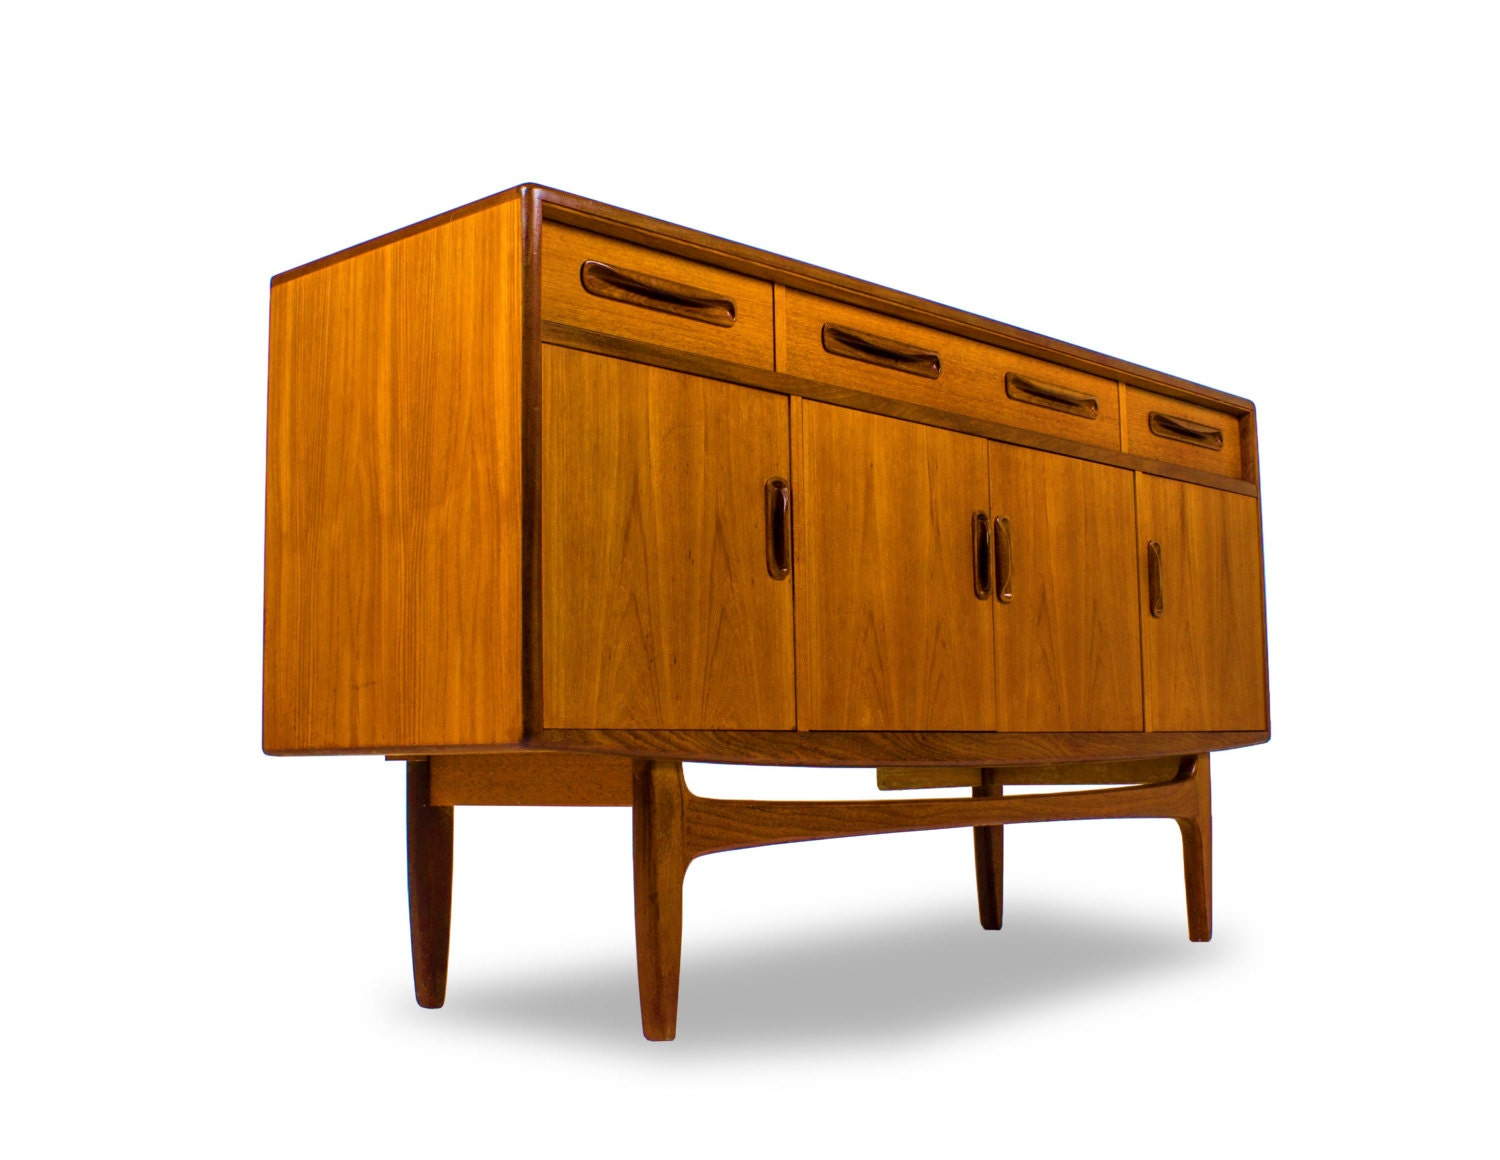 G plan mid century credenza media console buffet drinks cabinet danish modern style mcm modern - Media consoles for small spaces plan ...